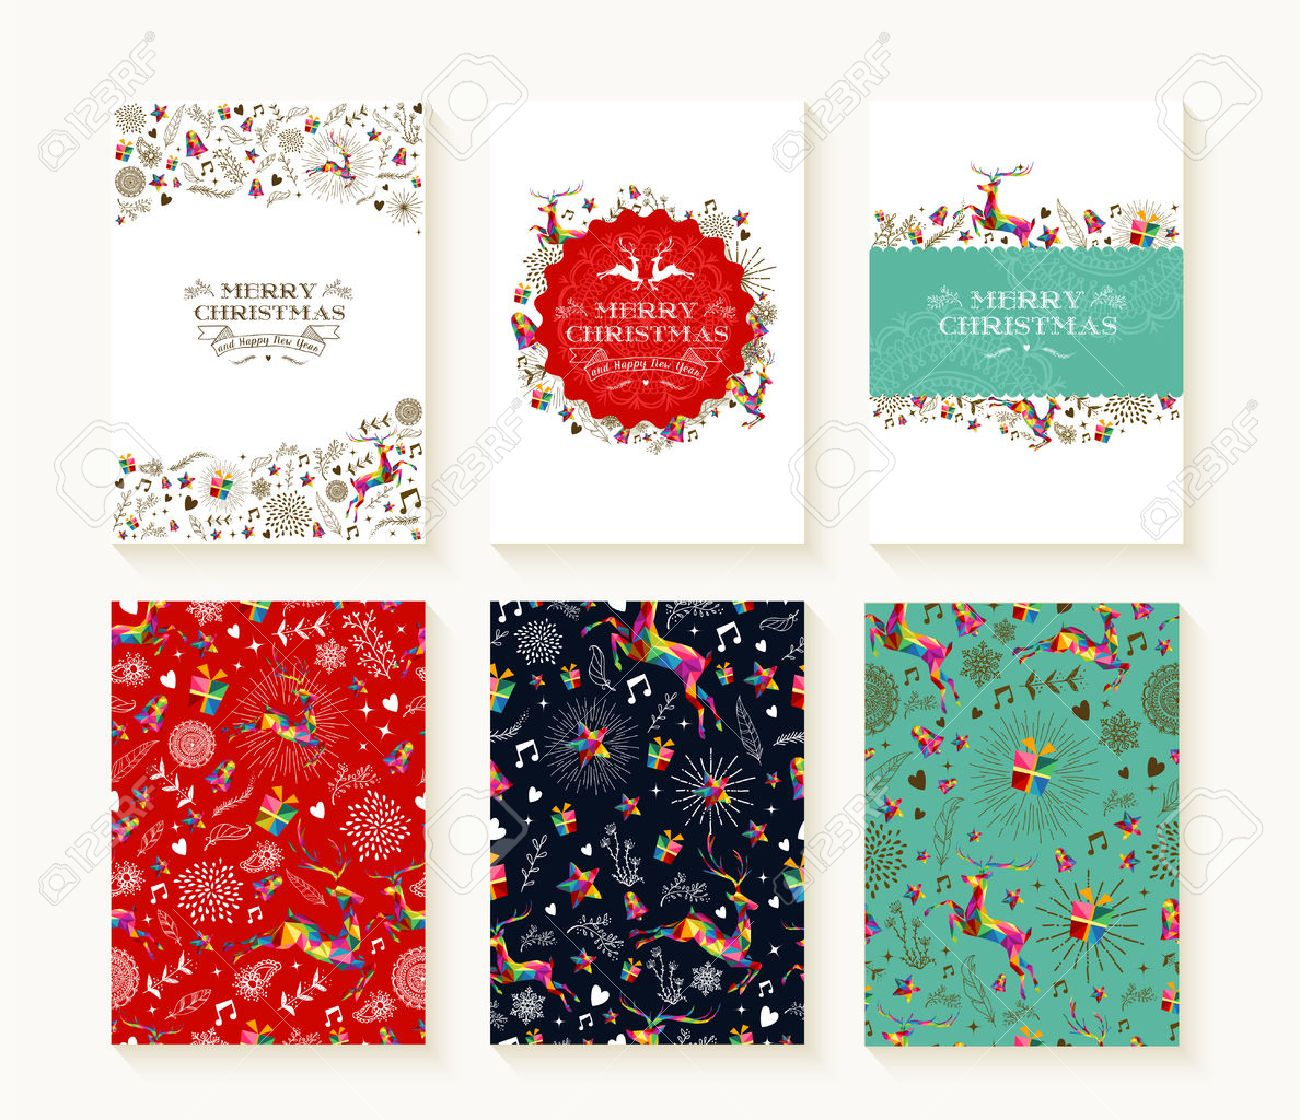 Merry christmas set of seamless xmas reindeer patterns in colorful low poly style and text templates. Ideal for holiday greeting cards, print, or wrapping paper. EPS10 vector file. Stock Vector - 45949398